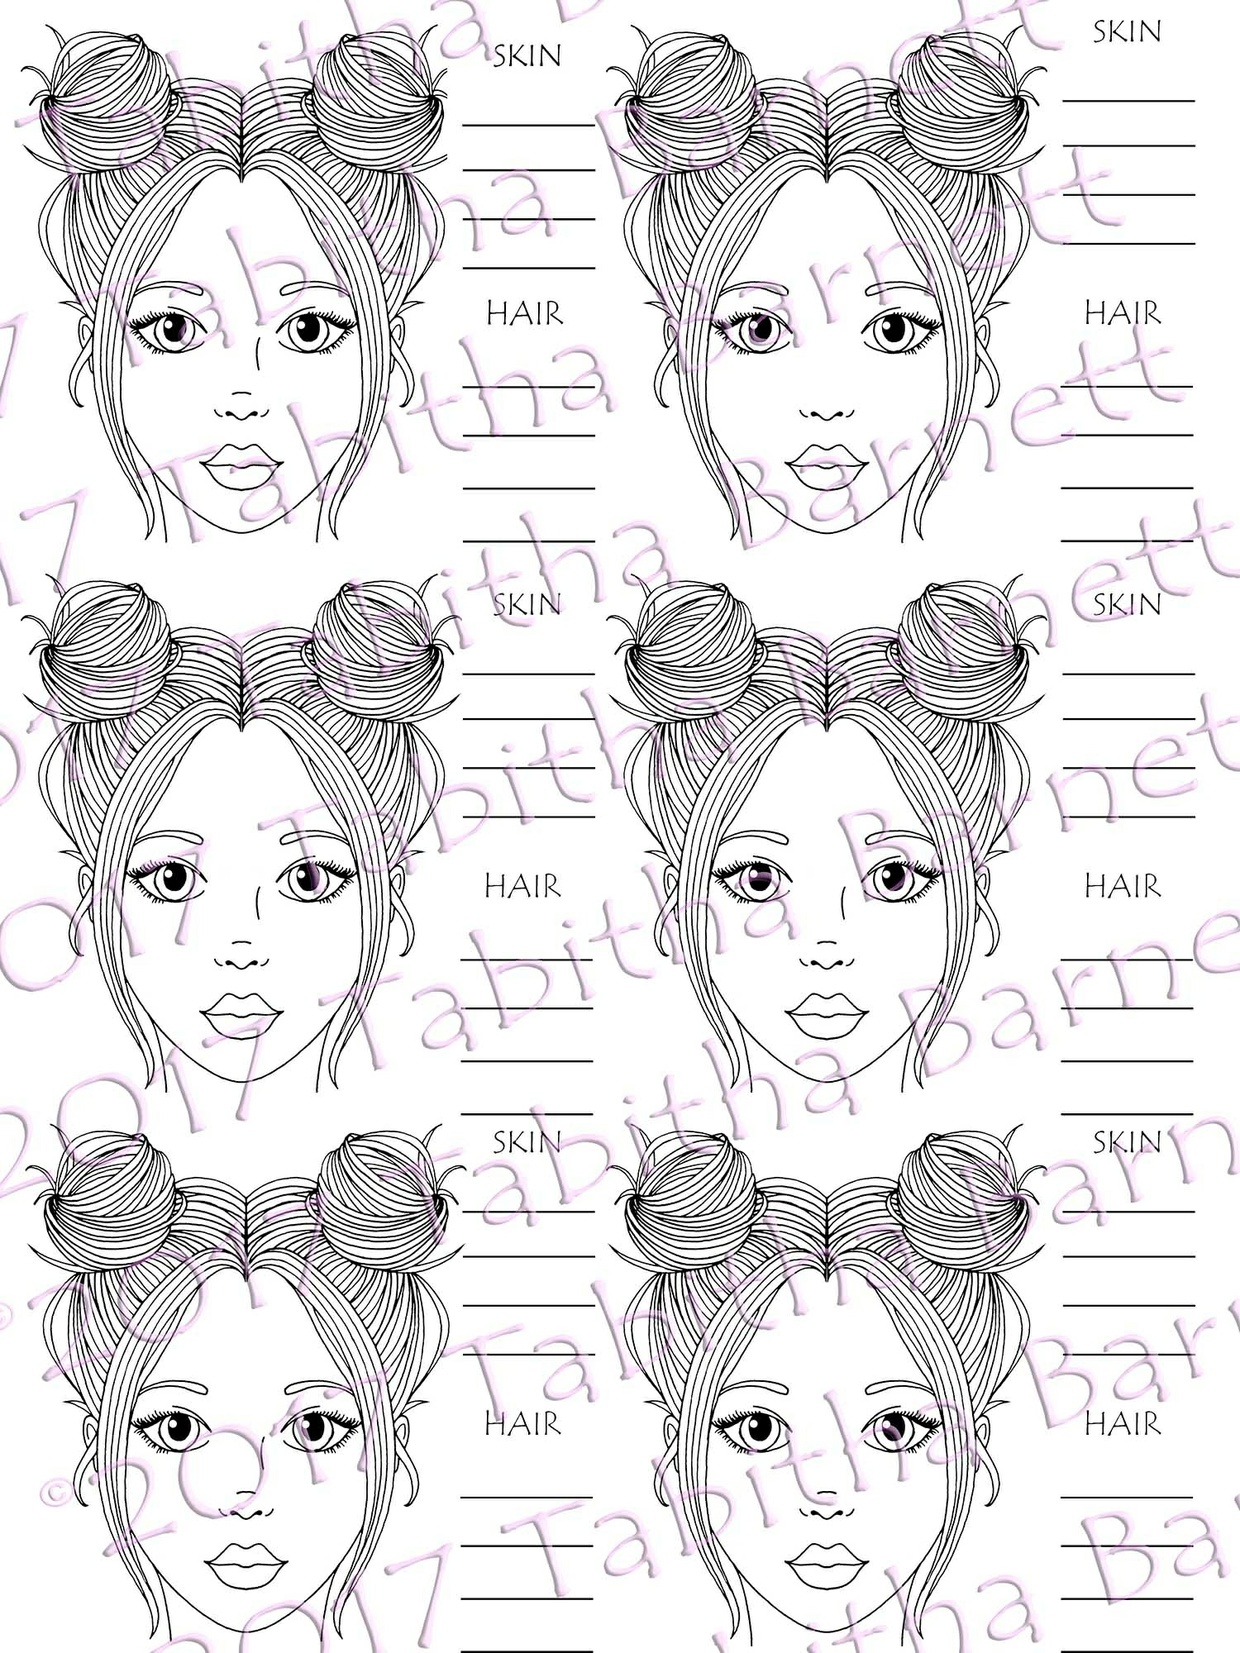 BLANK Hair and Skin Color Charts and Practice Page PDF